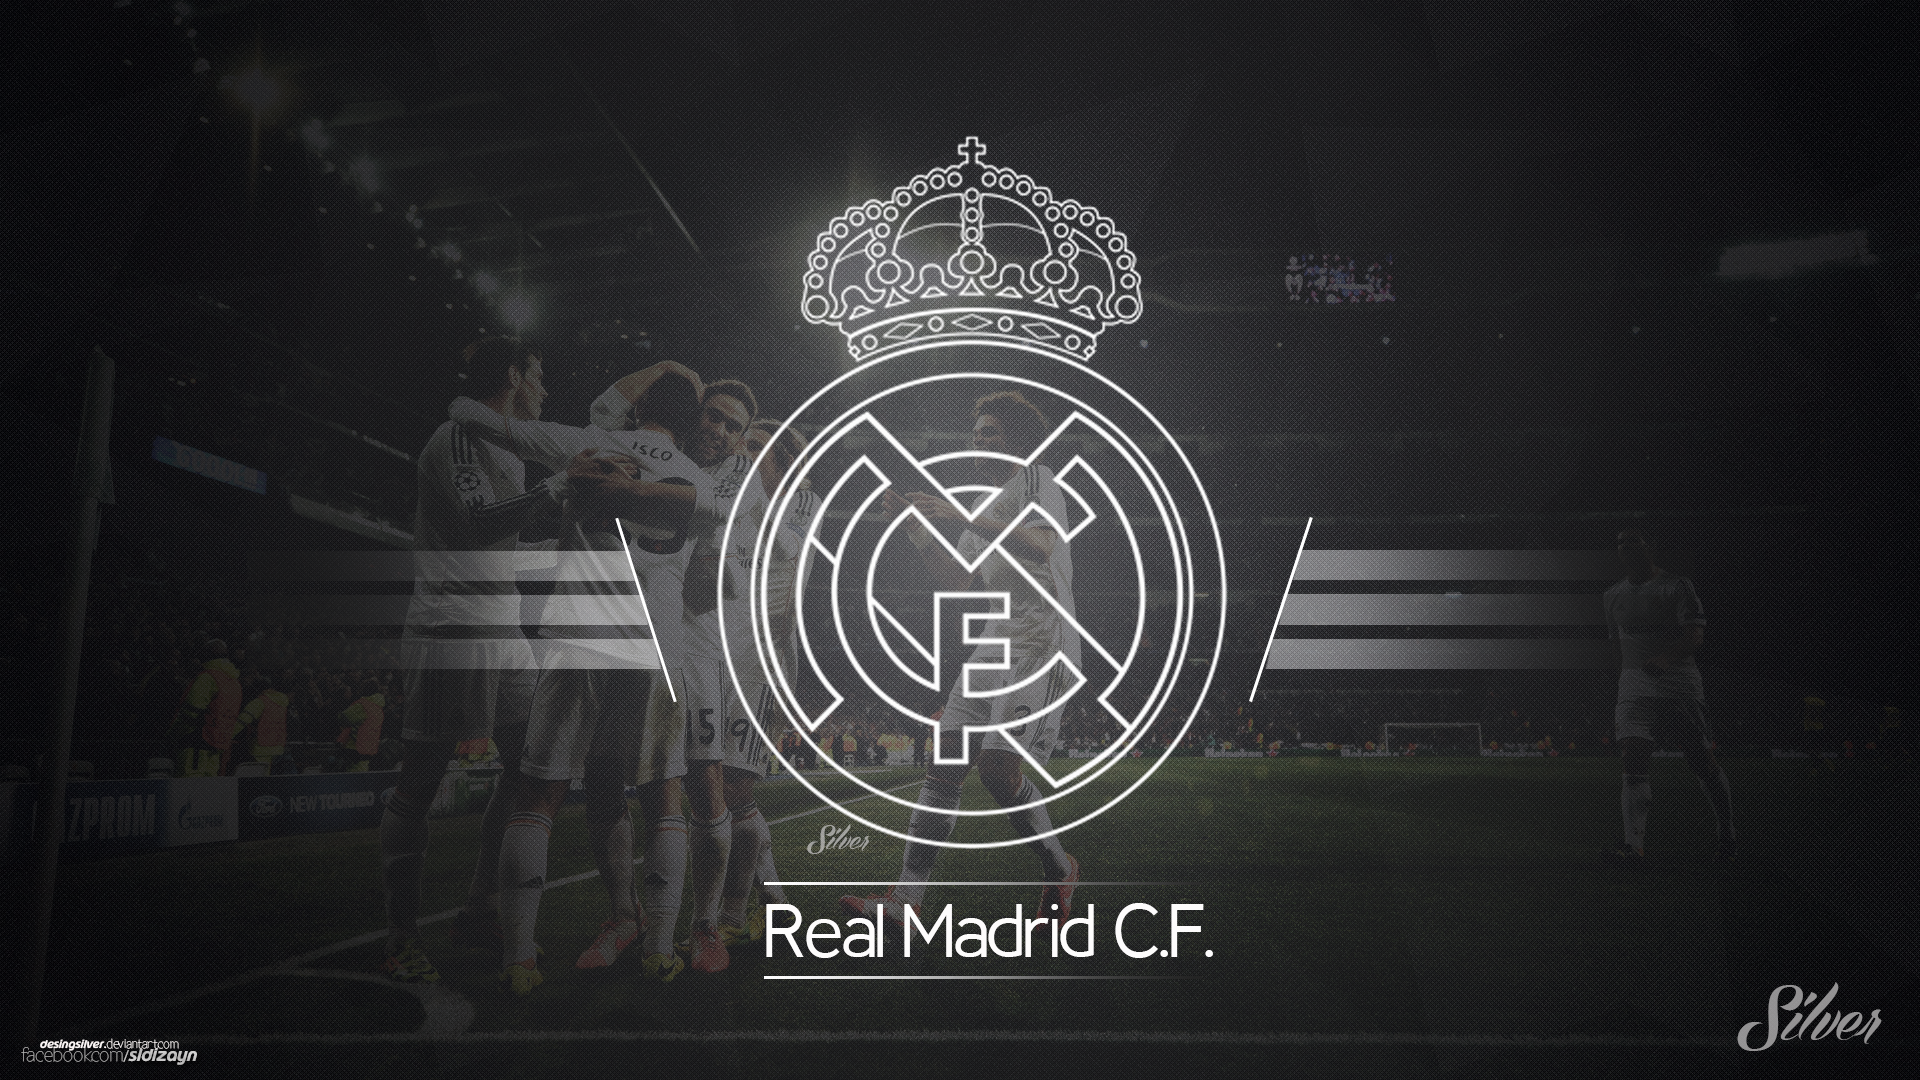 Wallpapers Real Madrid Real Madrid Wallpapers Real Madrid Logo Wallpapers Madrid Wallpaper